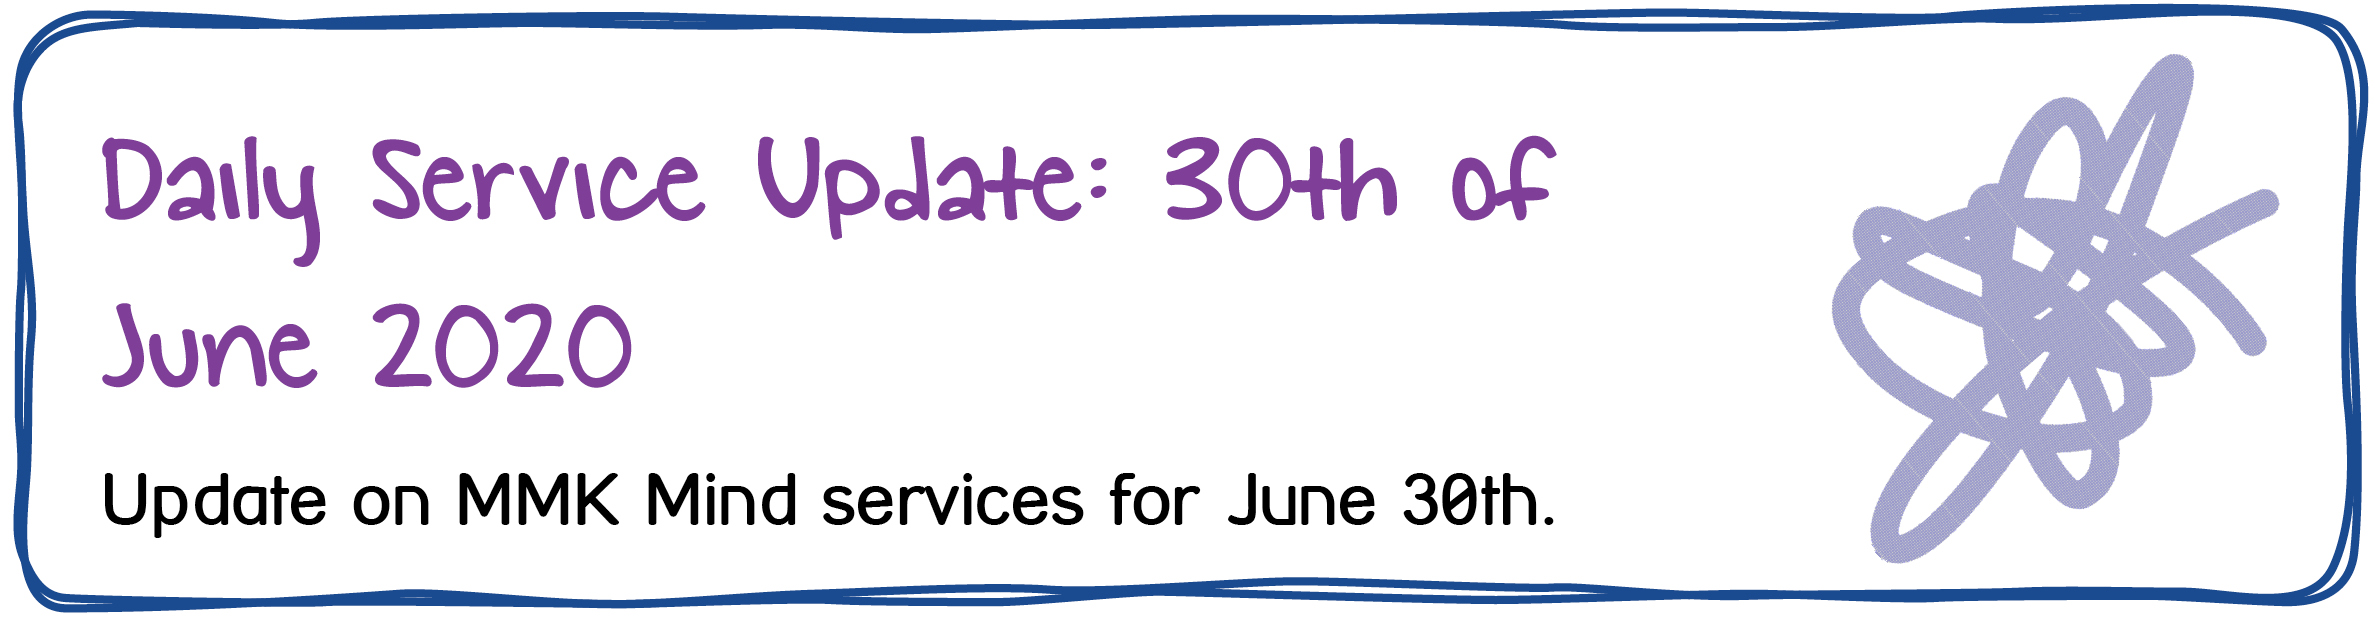 Daily Service Update: 30th of June 2020. Update on MMK Mind services for June 30th.